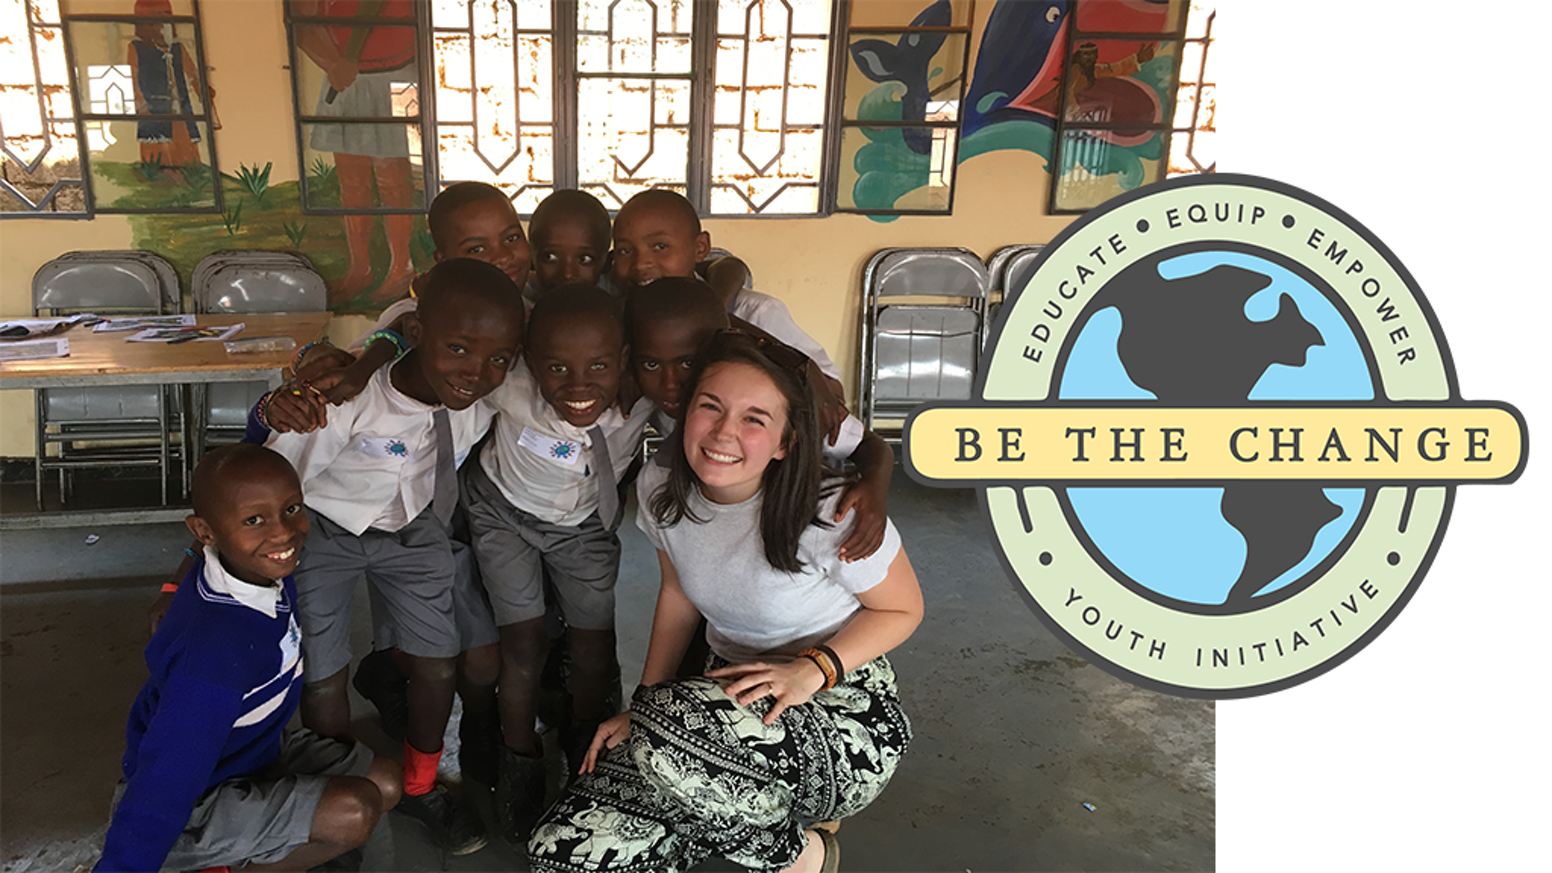 Be The Change Youth Initiative By Sydney Guerrette Kickstarter